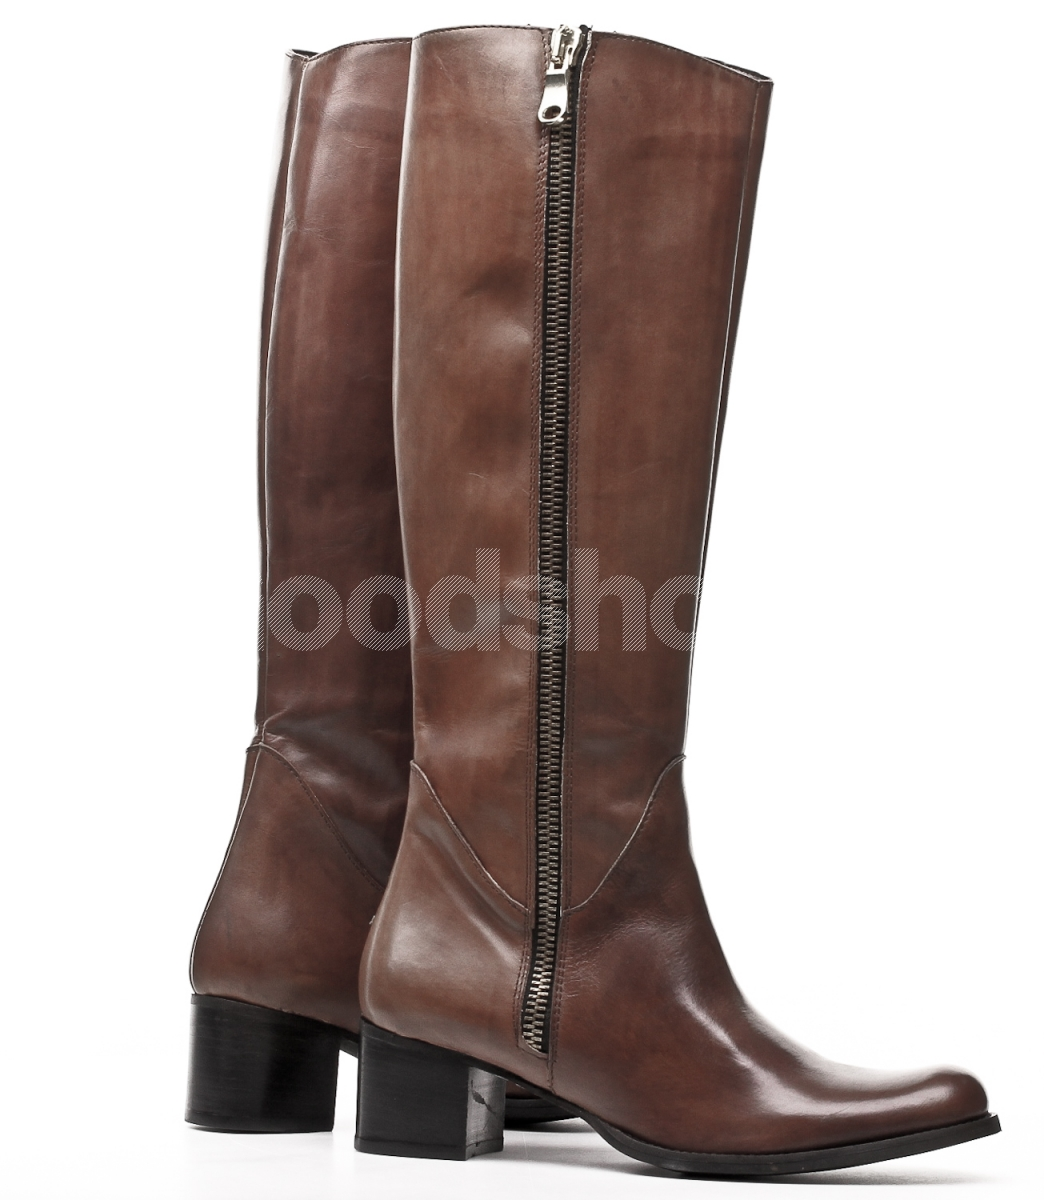 New Frye Frye Lindsay Plate Women Leather Brown Knee High Boot Boots